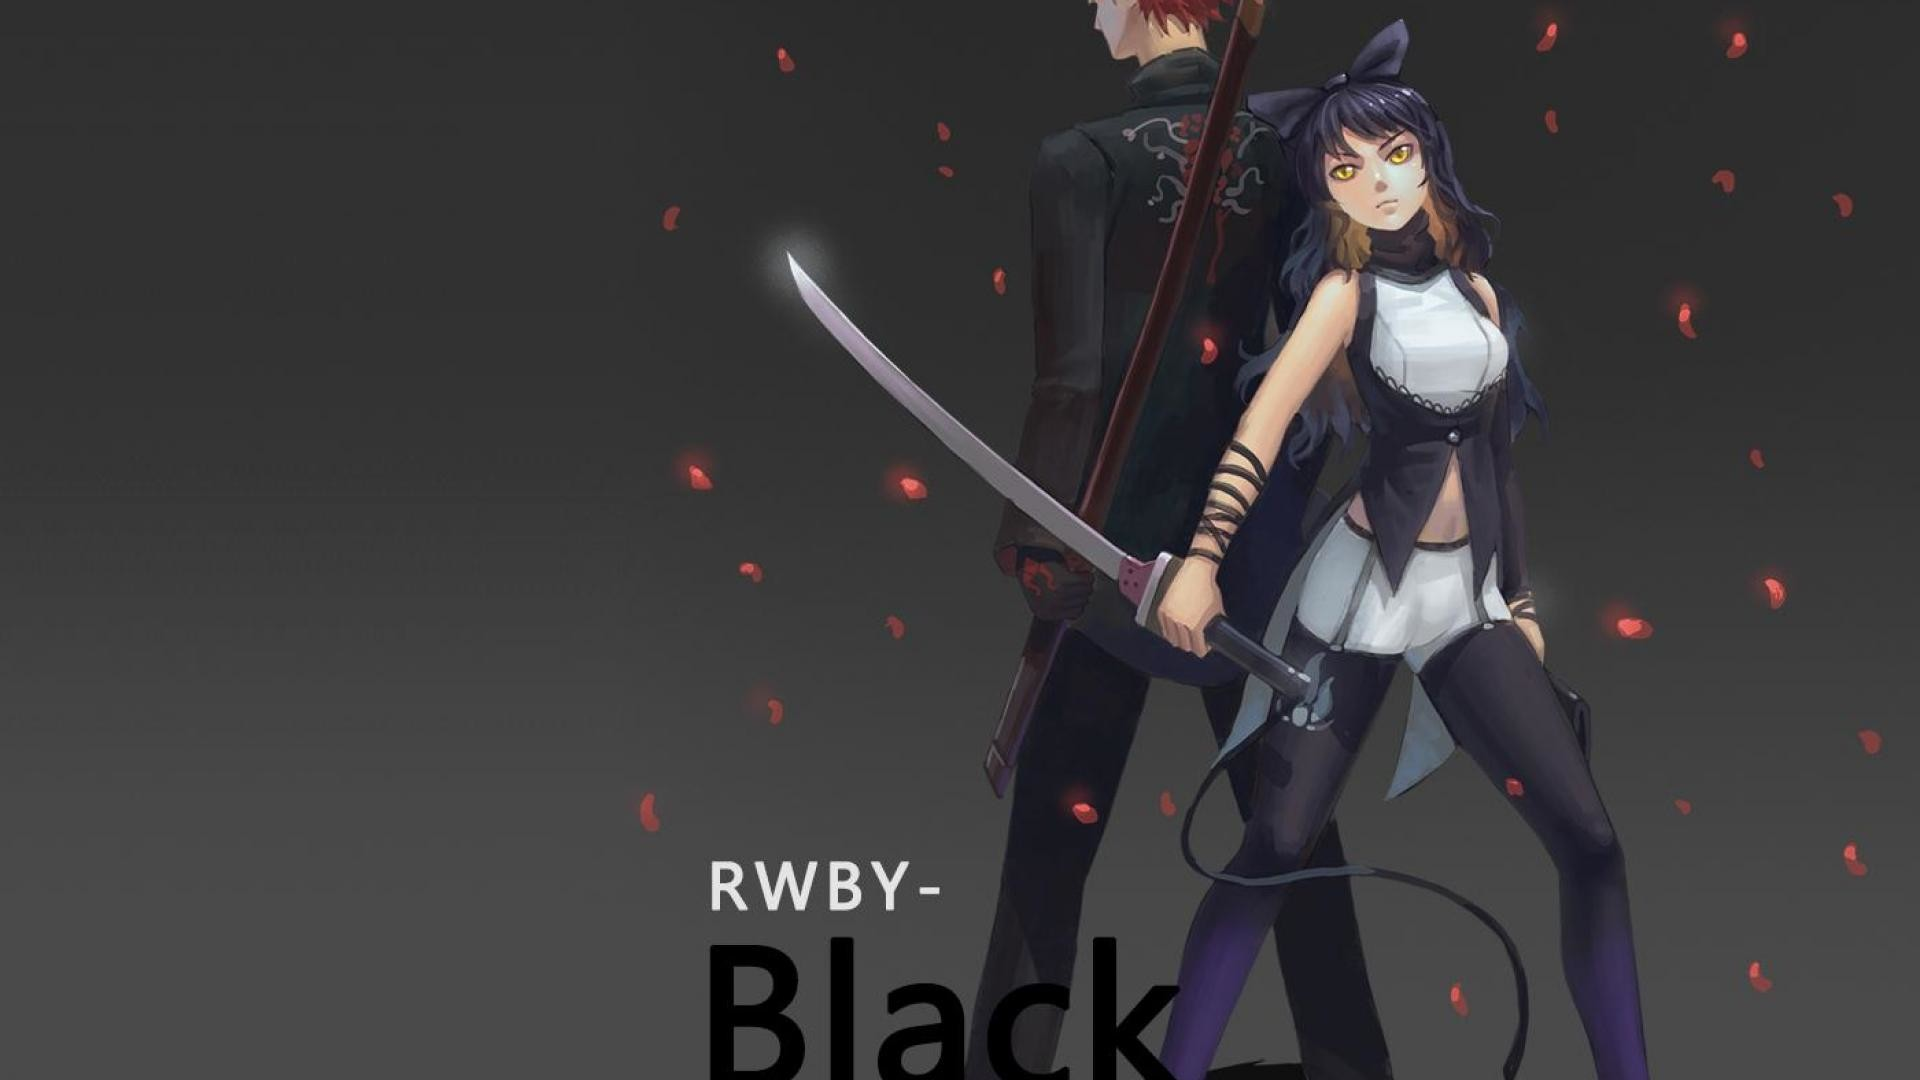 Rwby black – (#165062) – High Quality and Resolution Wallpapers on .